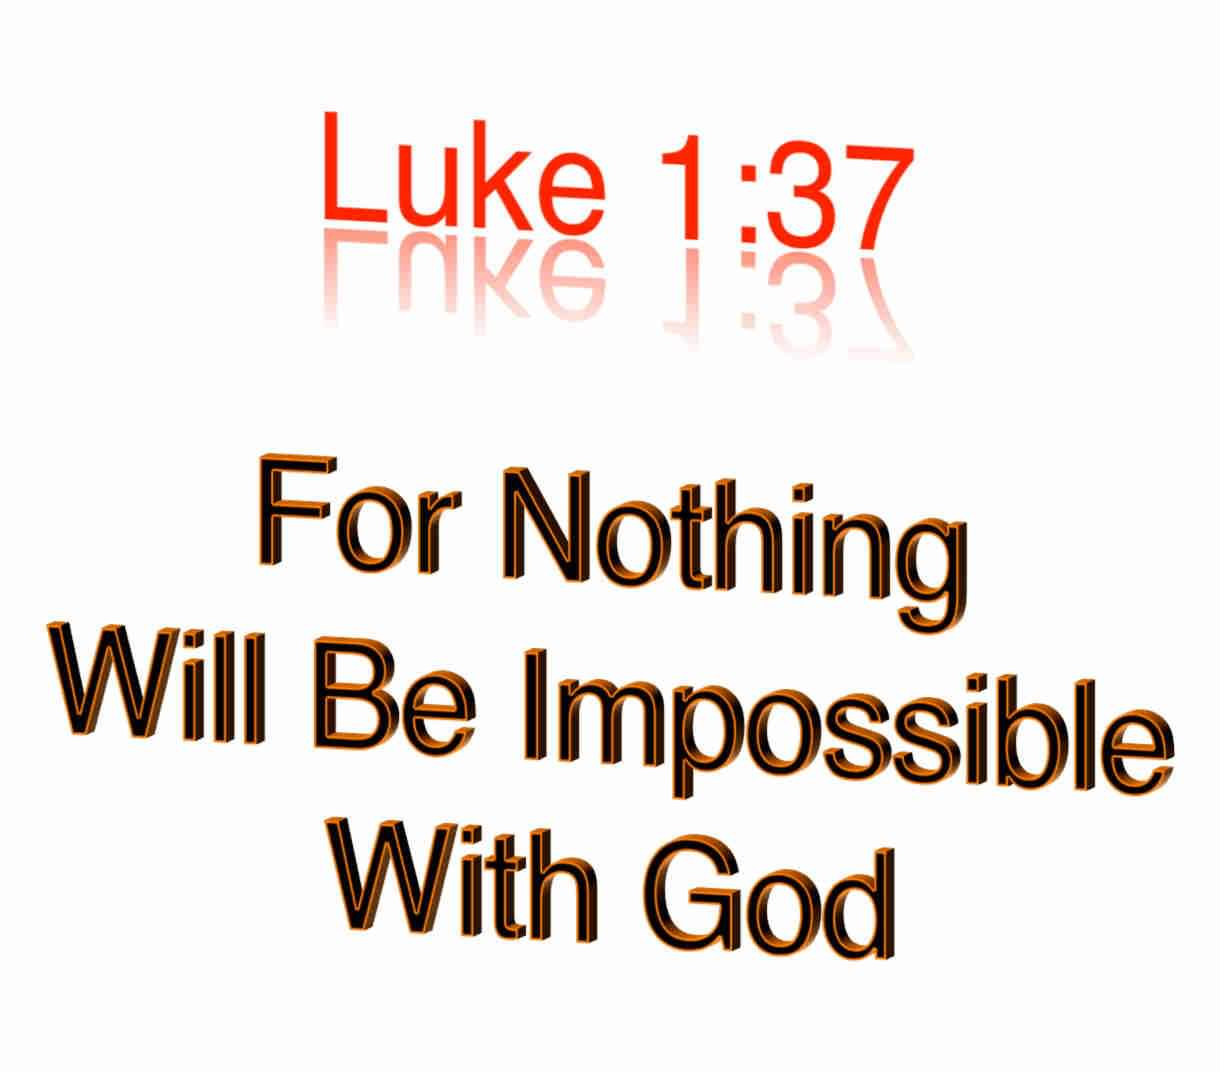 For Nothing Will Be Impossible With God